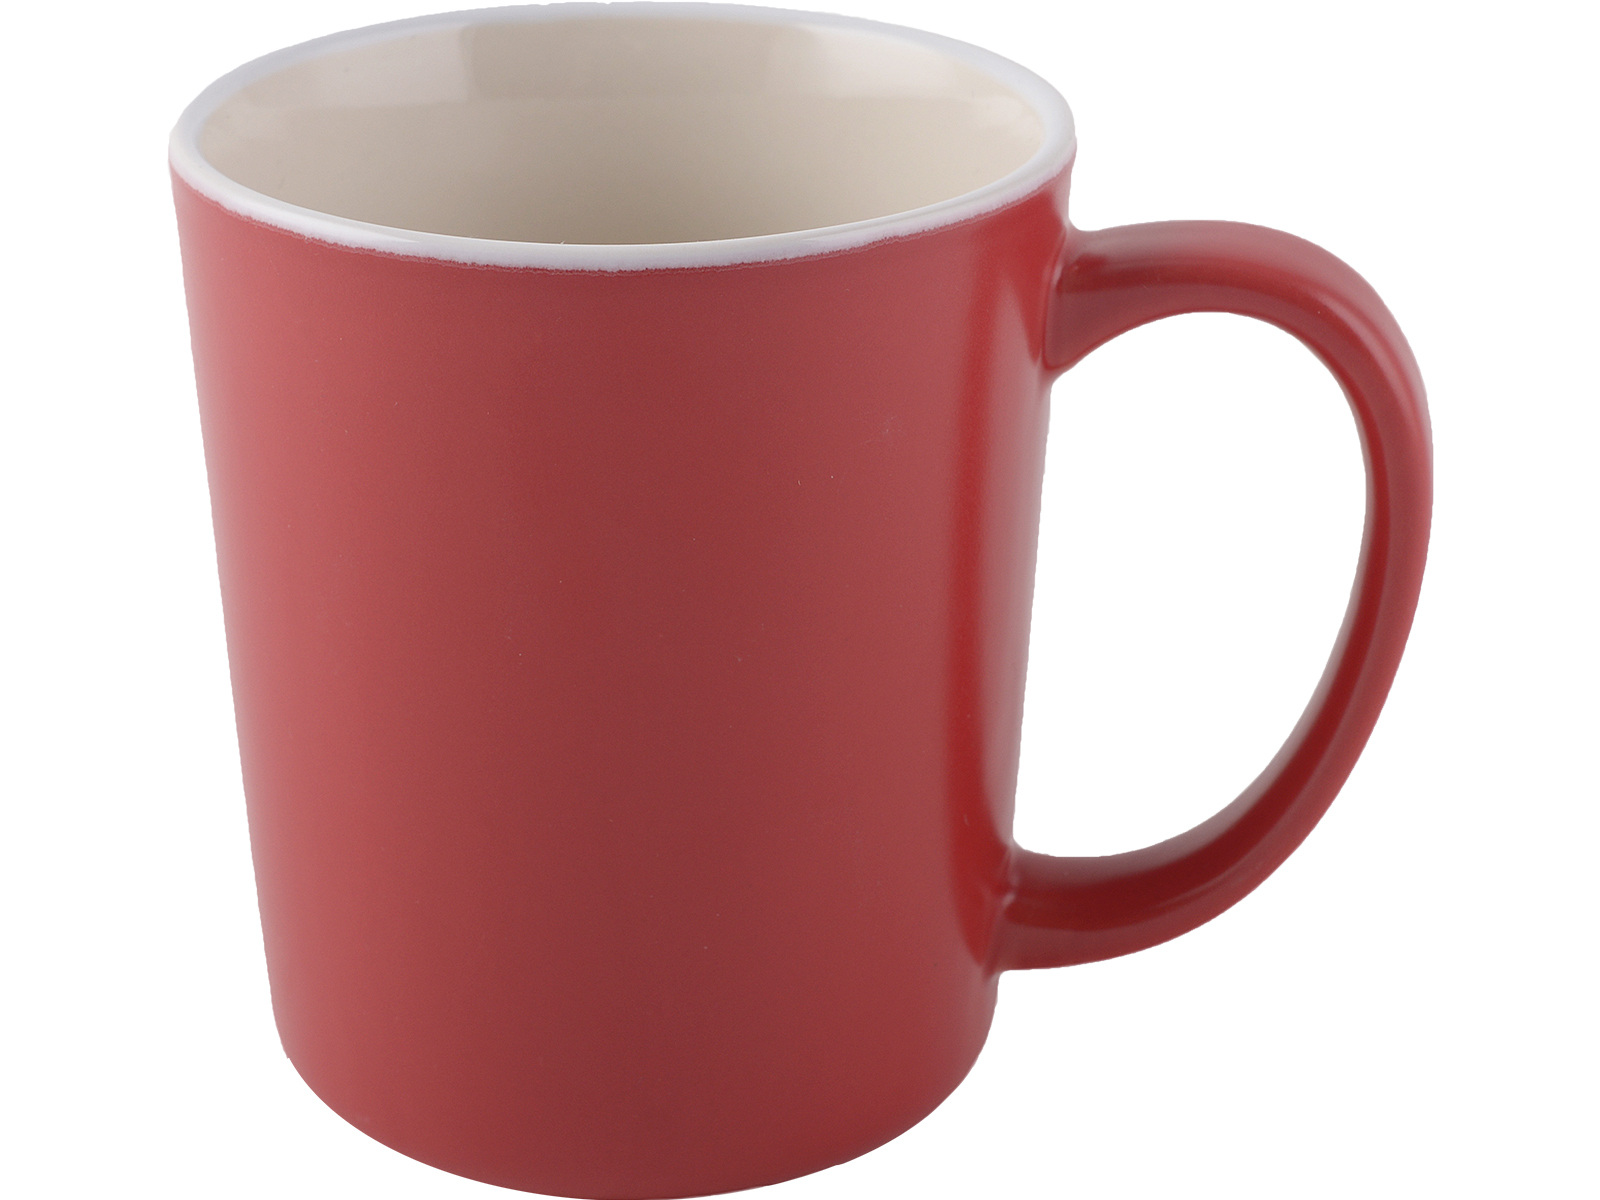 La Cafetiere Barcelona Latte Mug Matte Red